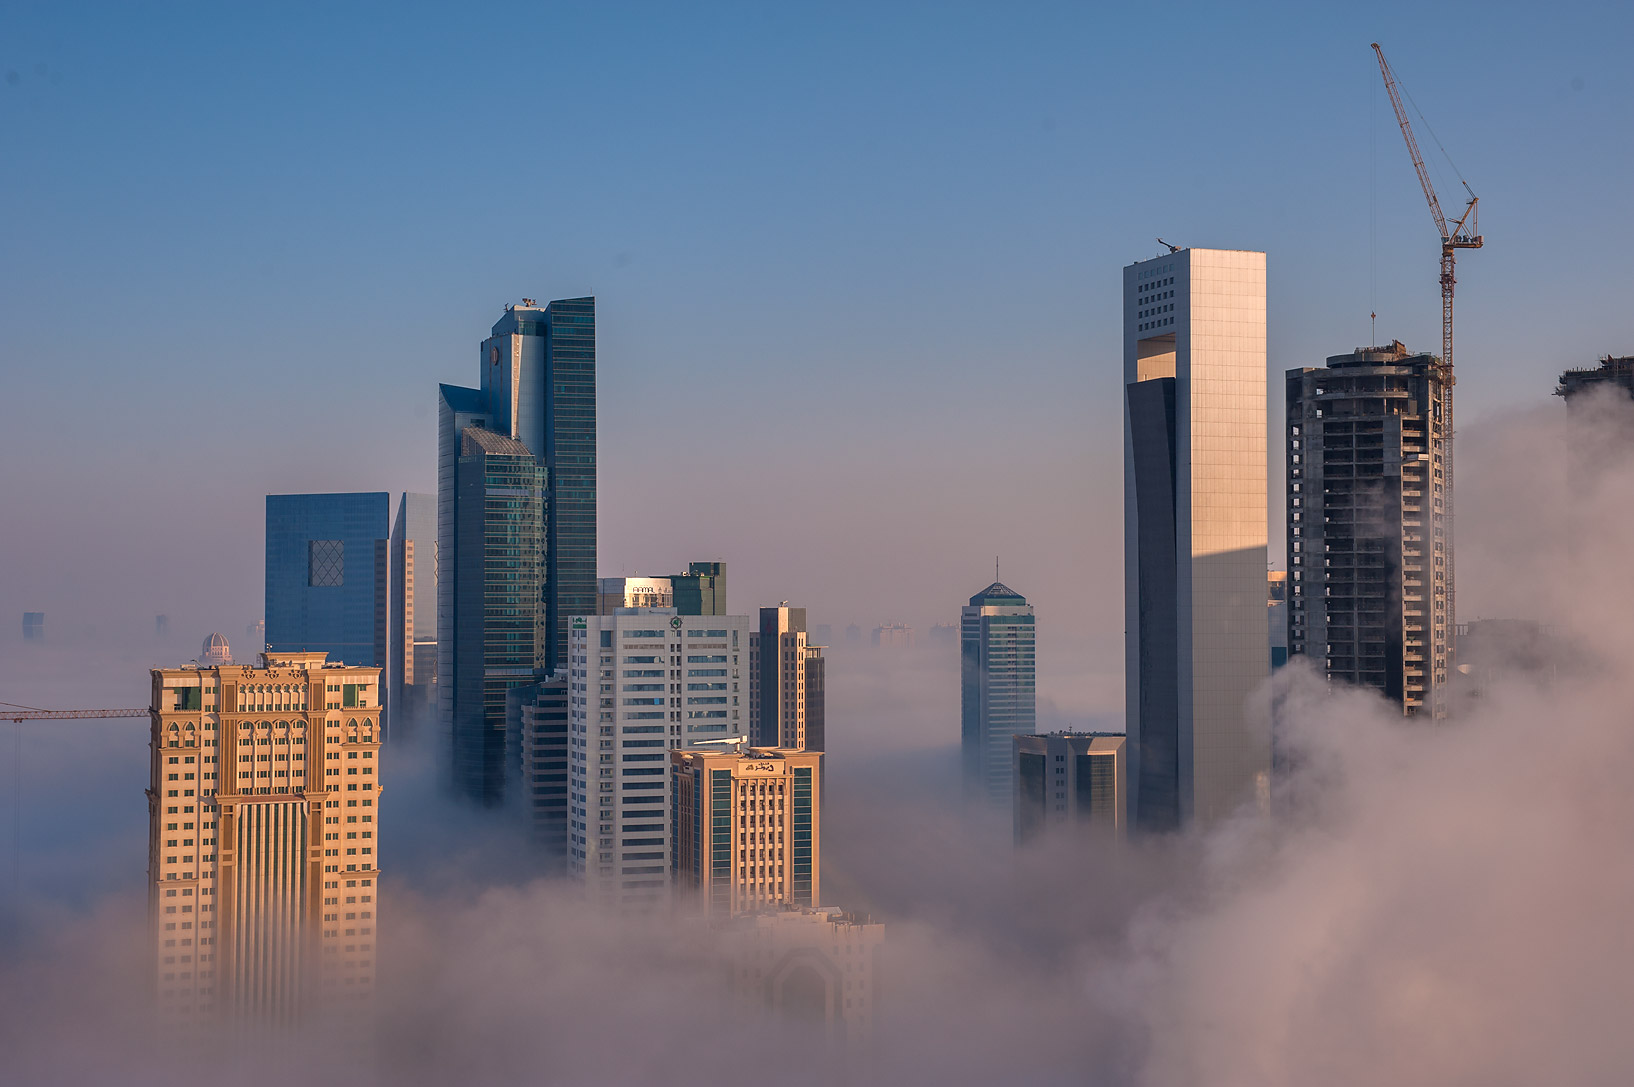 Patchy fog engulfed business district from a...Dareen Tower in West Bay. Doha, Qatar